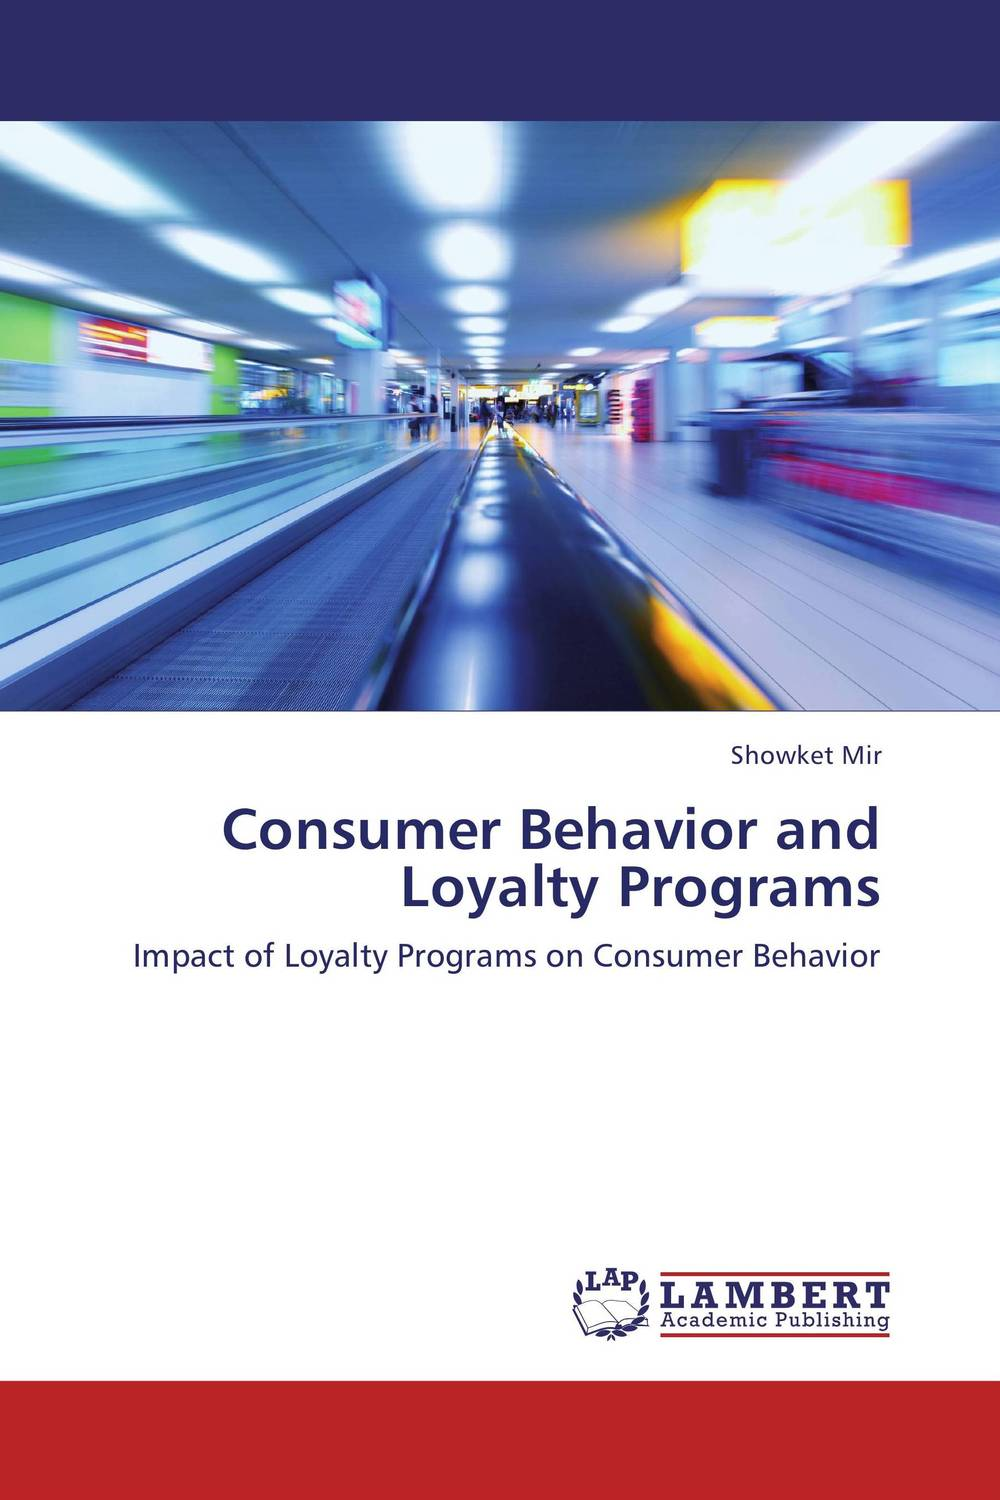 Consumer Behavior and Loyalty Programs eric holtzclaw v laddering unlocking the potential of consumer behavior